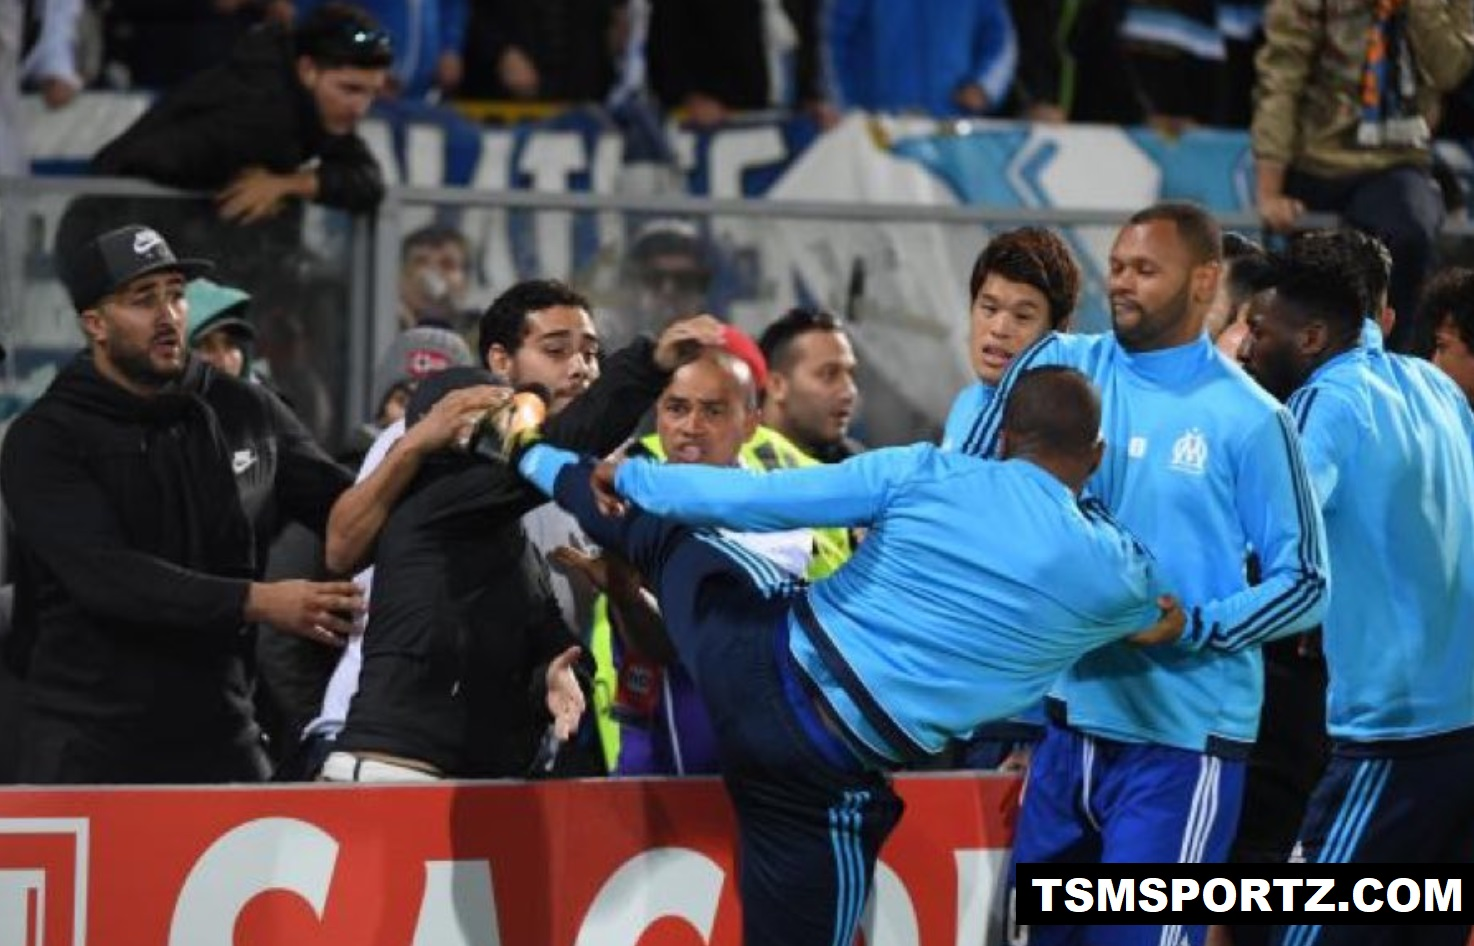 Evra ban from uefa competition till 2018 June for kicking fan